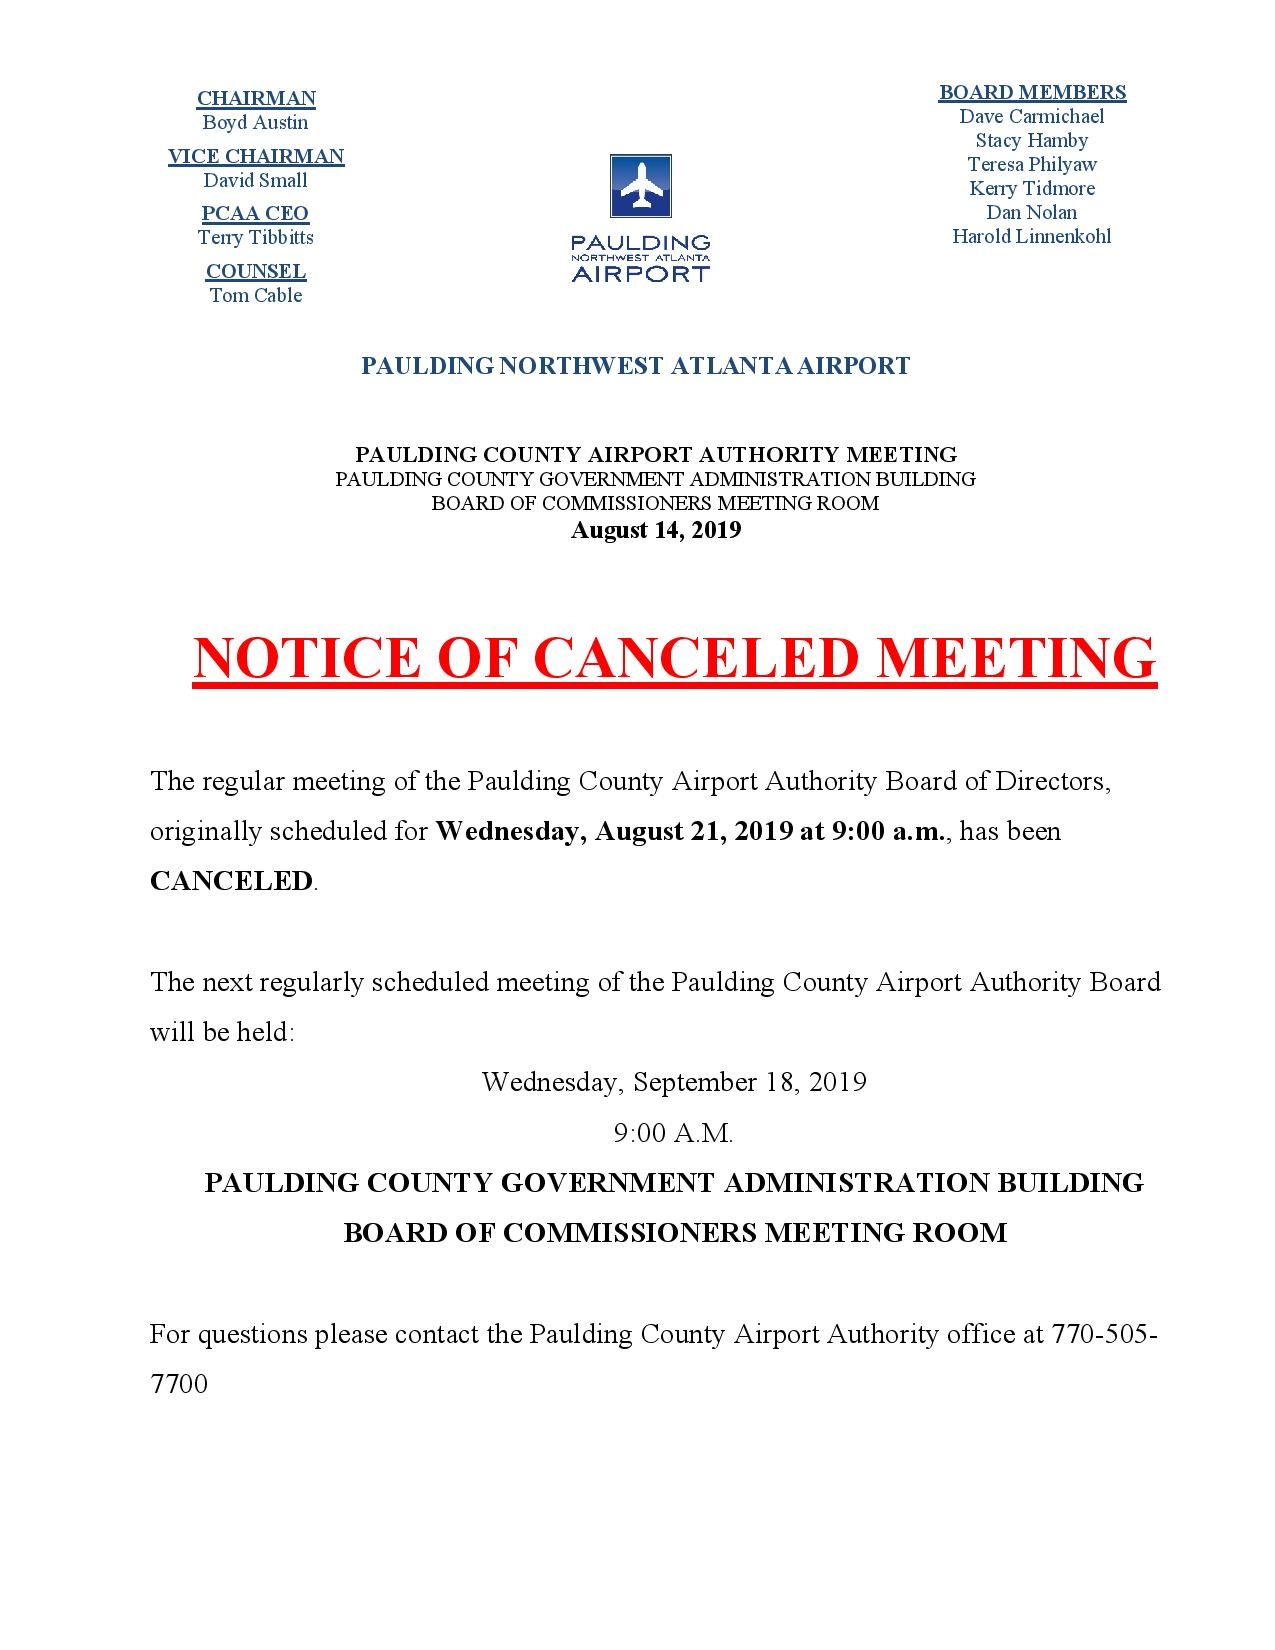 08.14.19 PCAA Notice of Canceled meeting